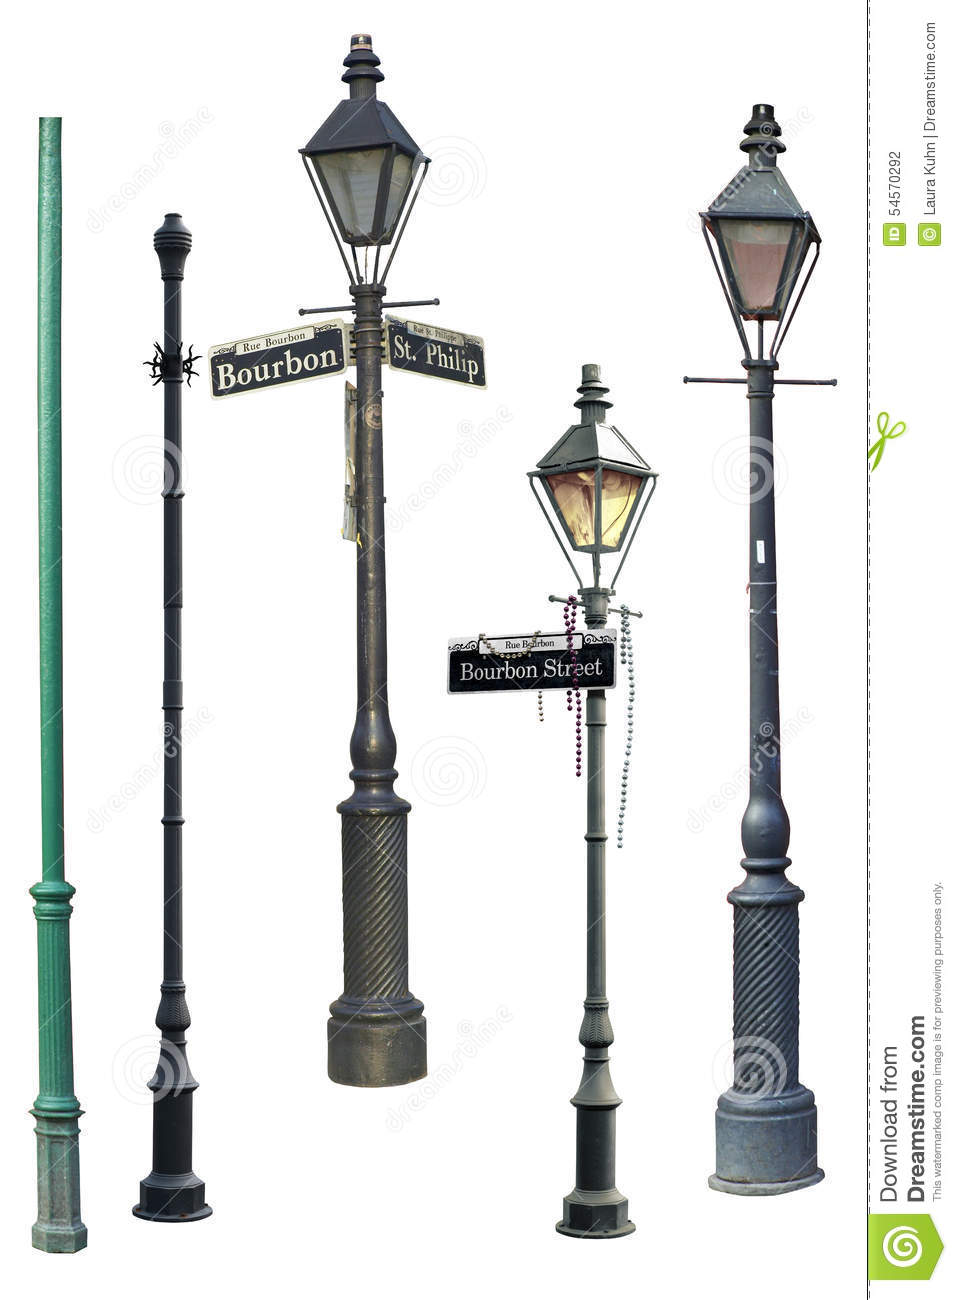 New Orleans Street Light Collection Stock Photo Illustration Of